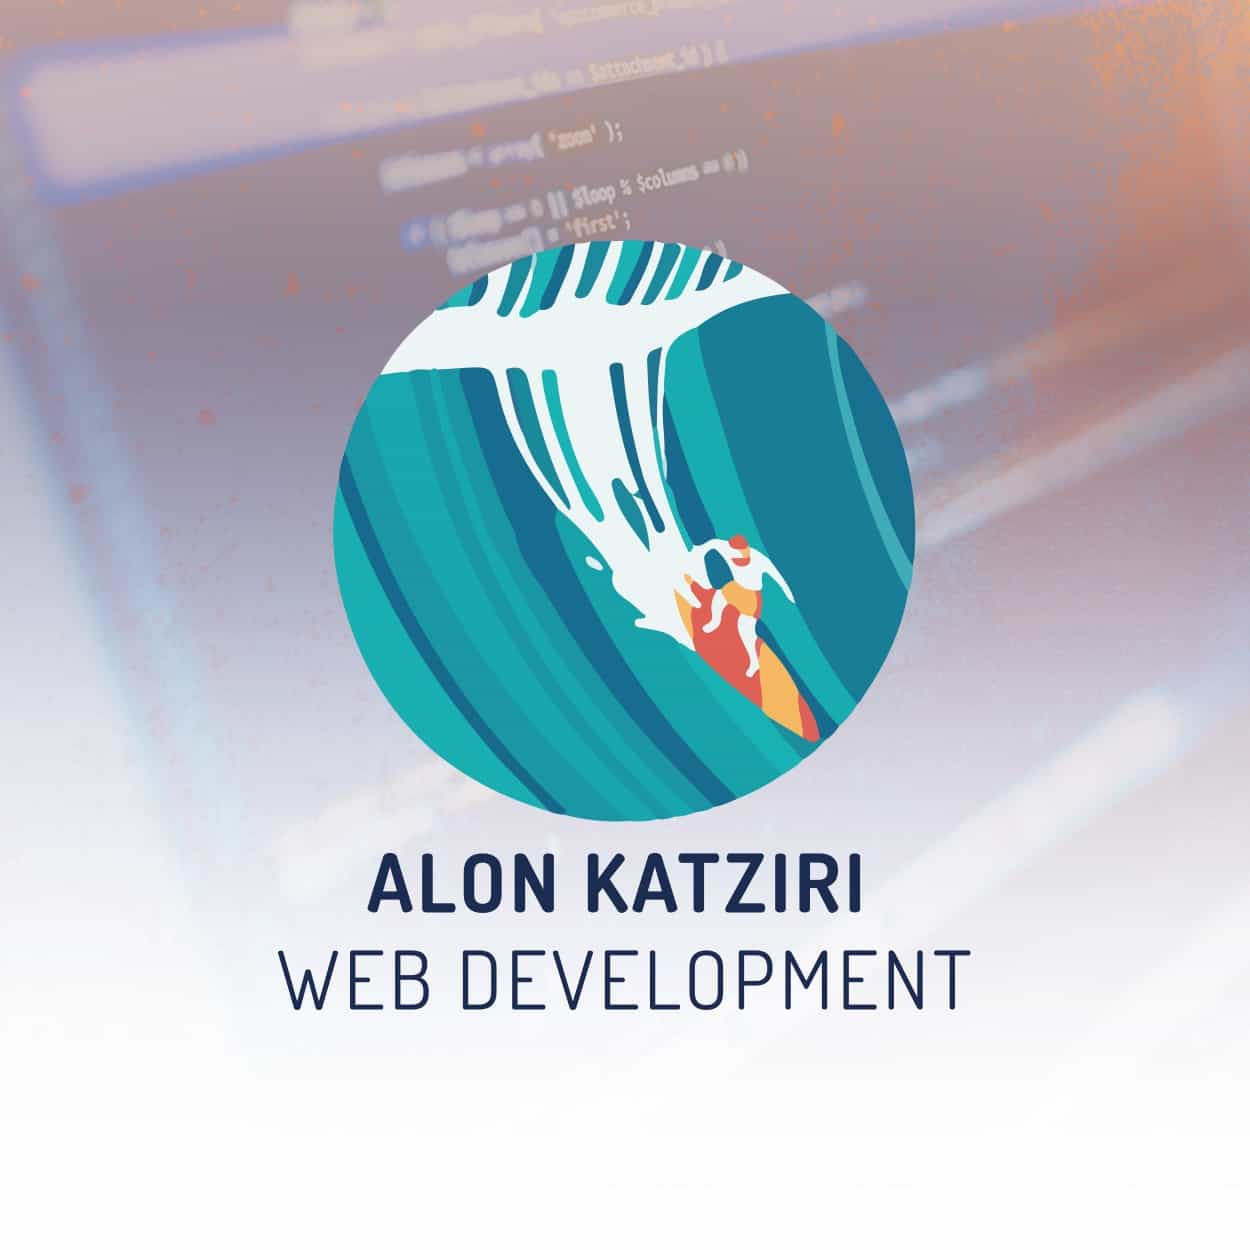 Let's Design Studio Nadia Ornstein - Alon Katzir - Websites Development Website Design UX UI